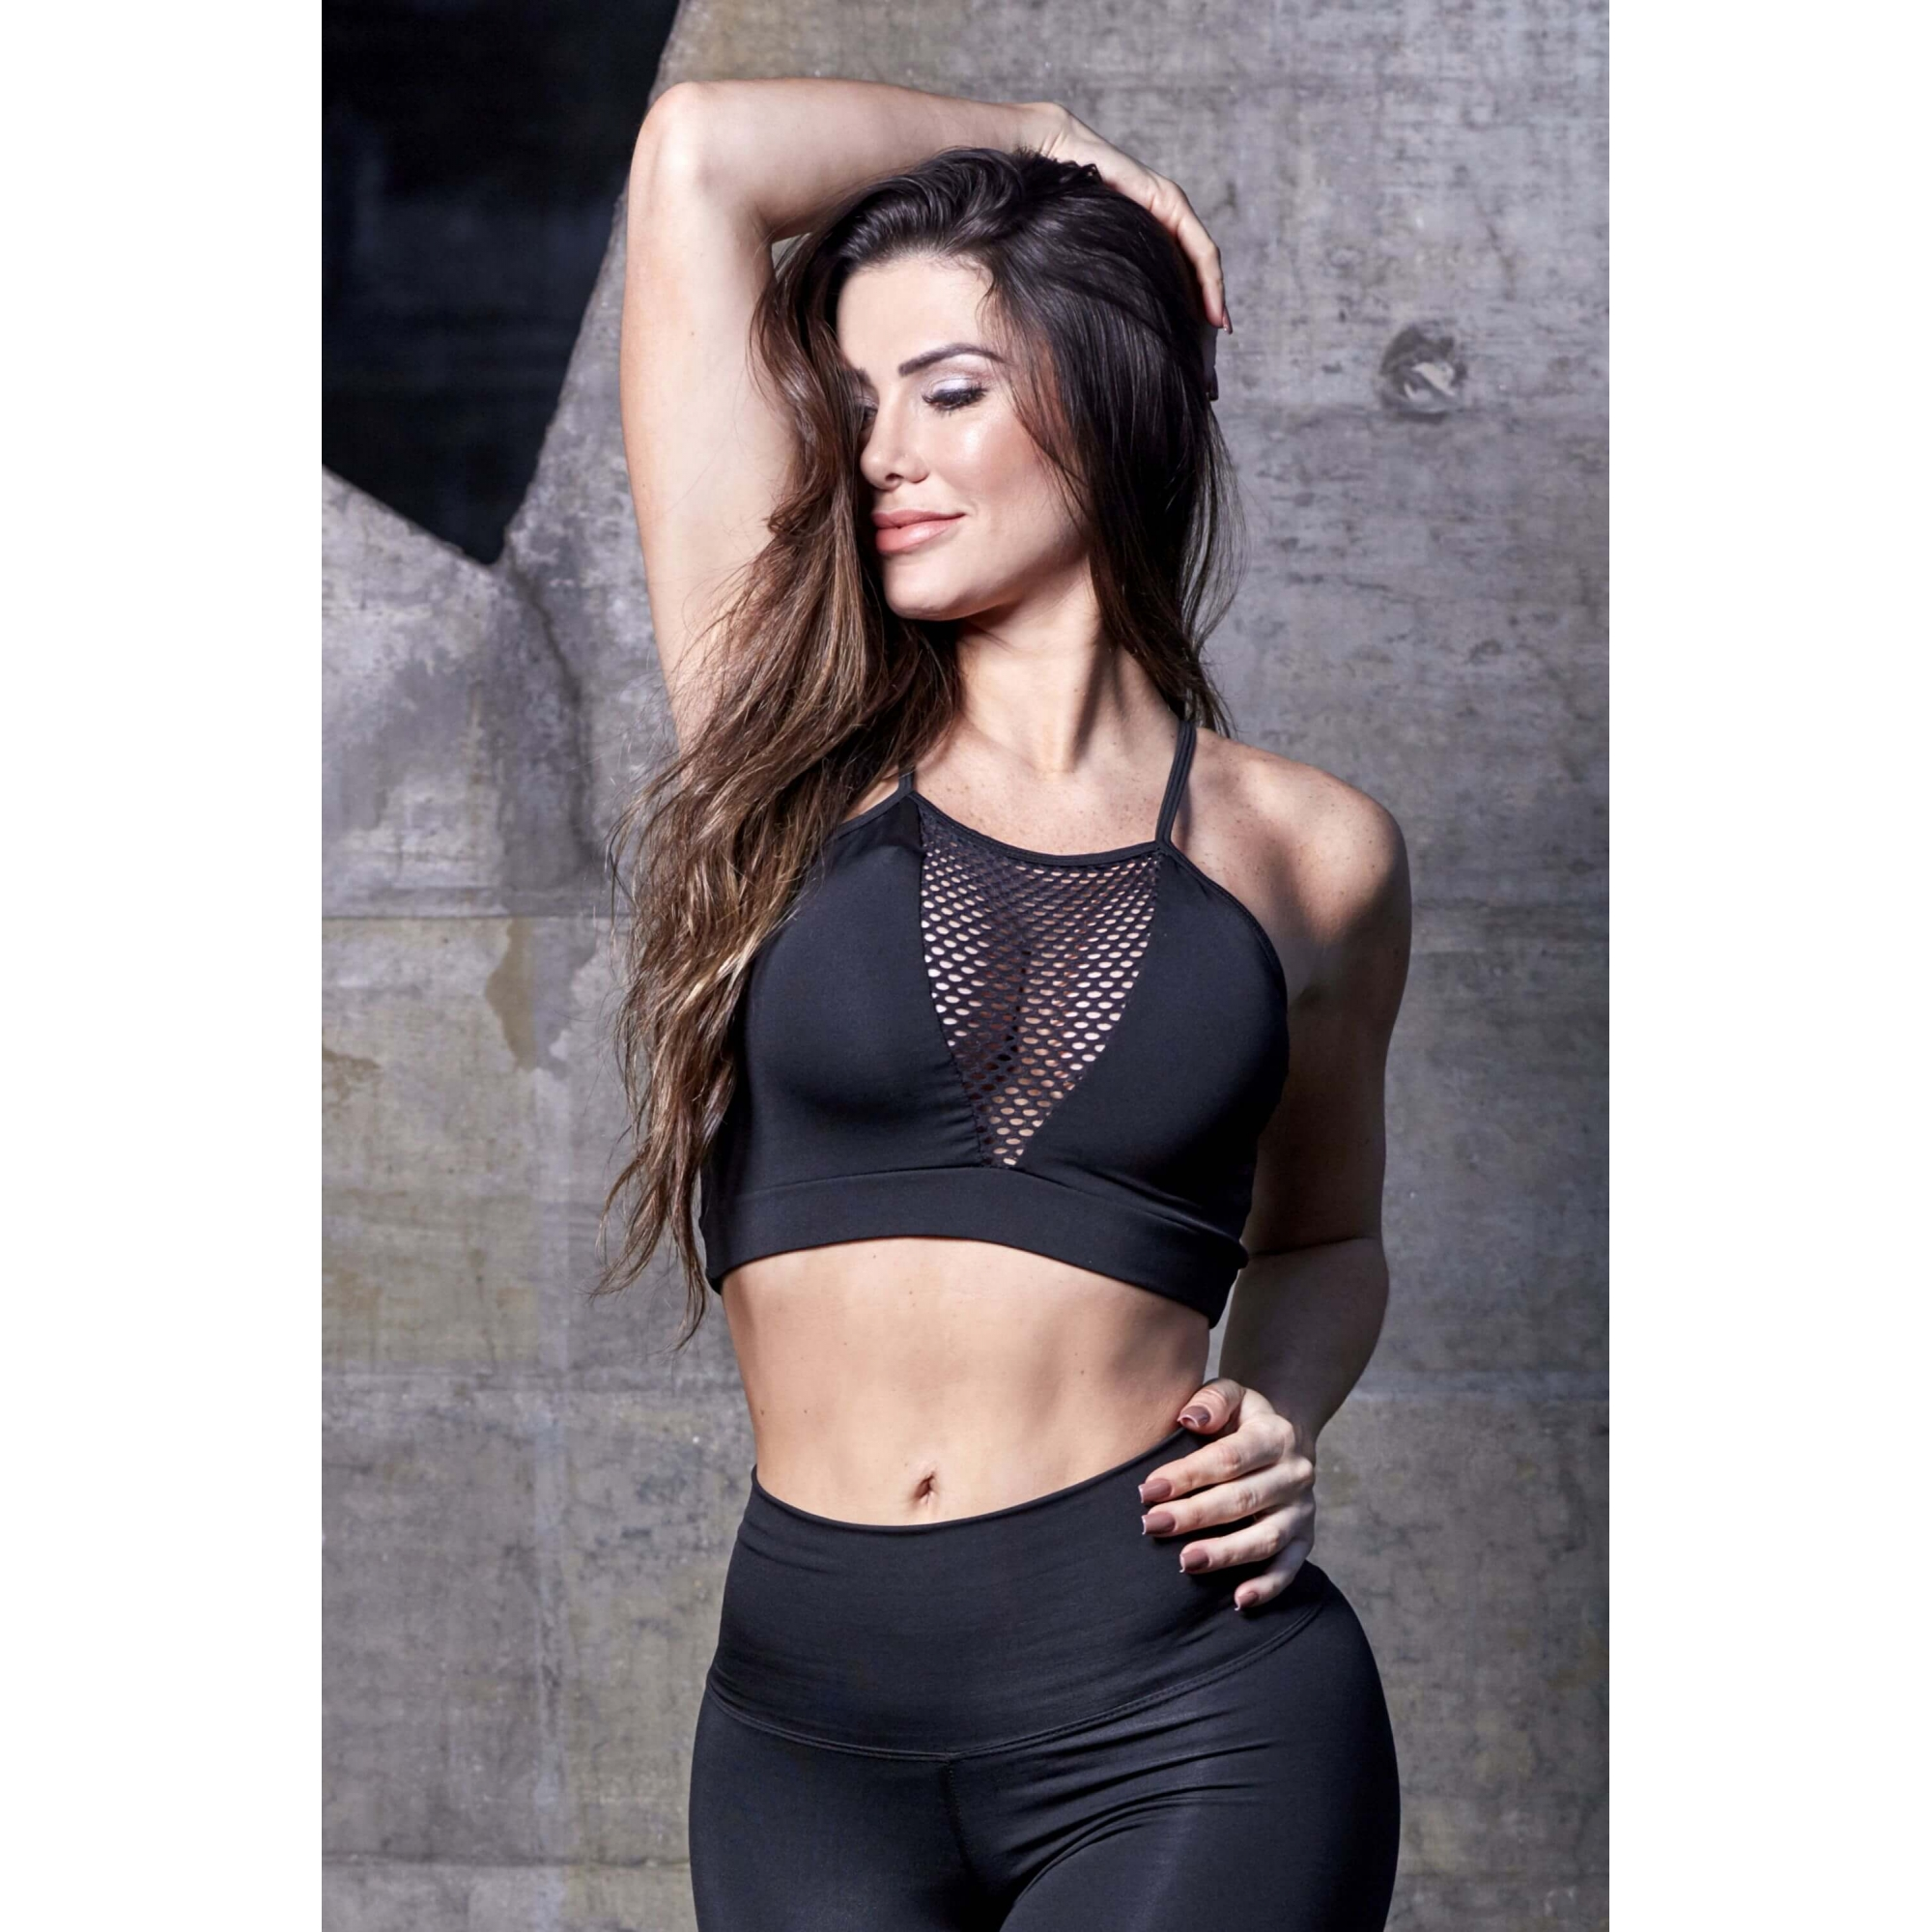 Cropped Paola  - Fribasex - Fabricasex.com